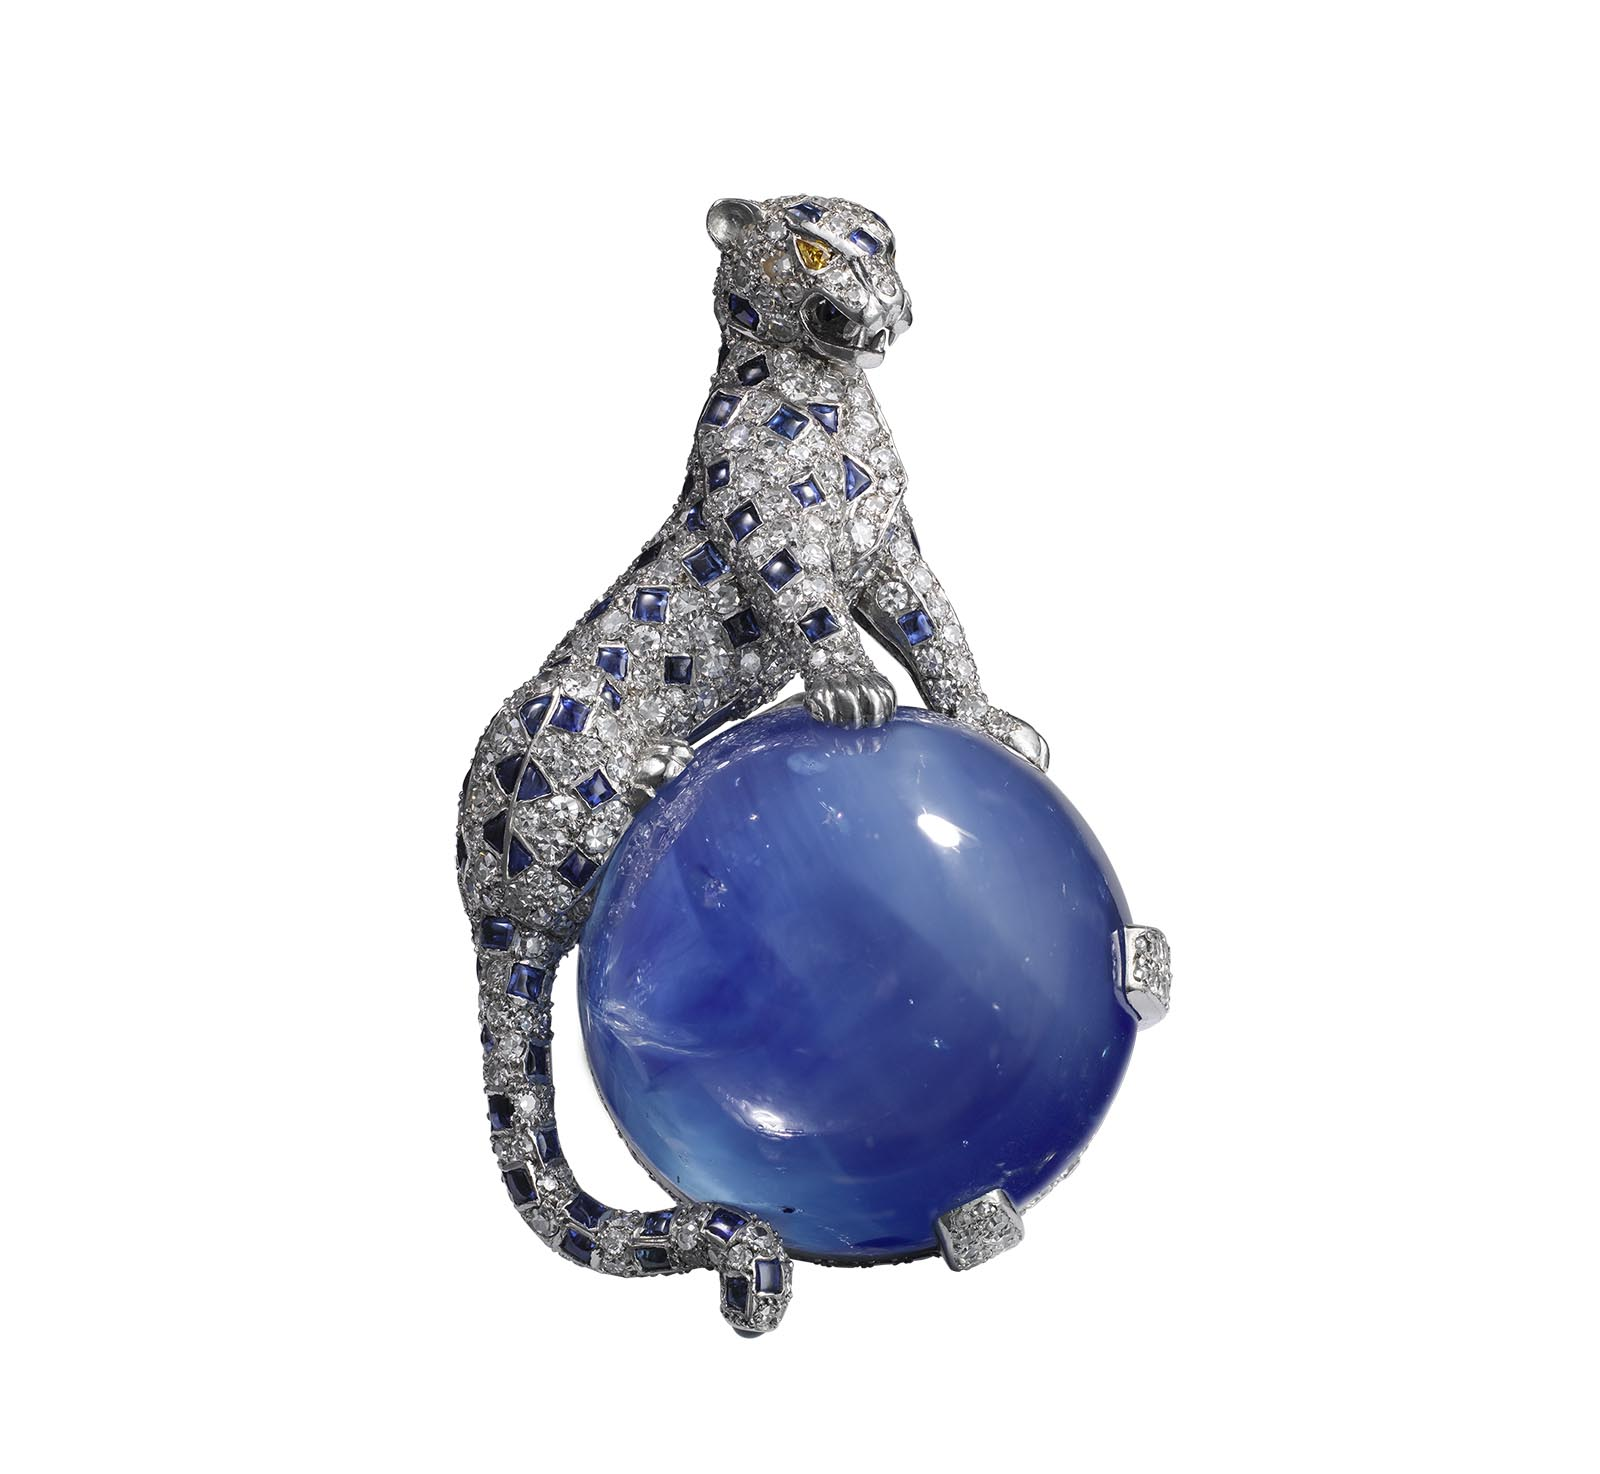 Cartier, Icon of Style - Duchess of Windsor - Panther Clip Brooch